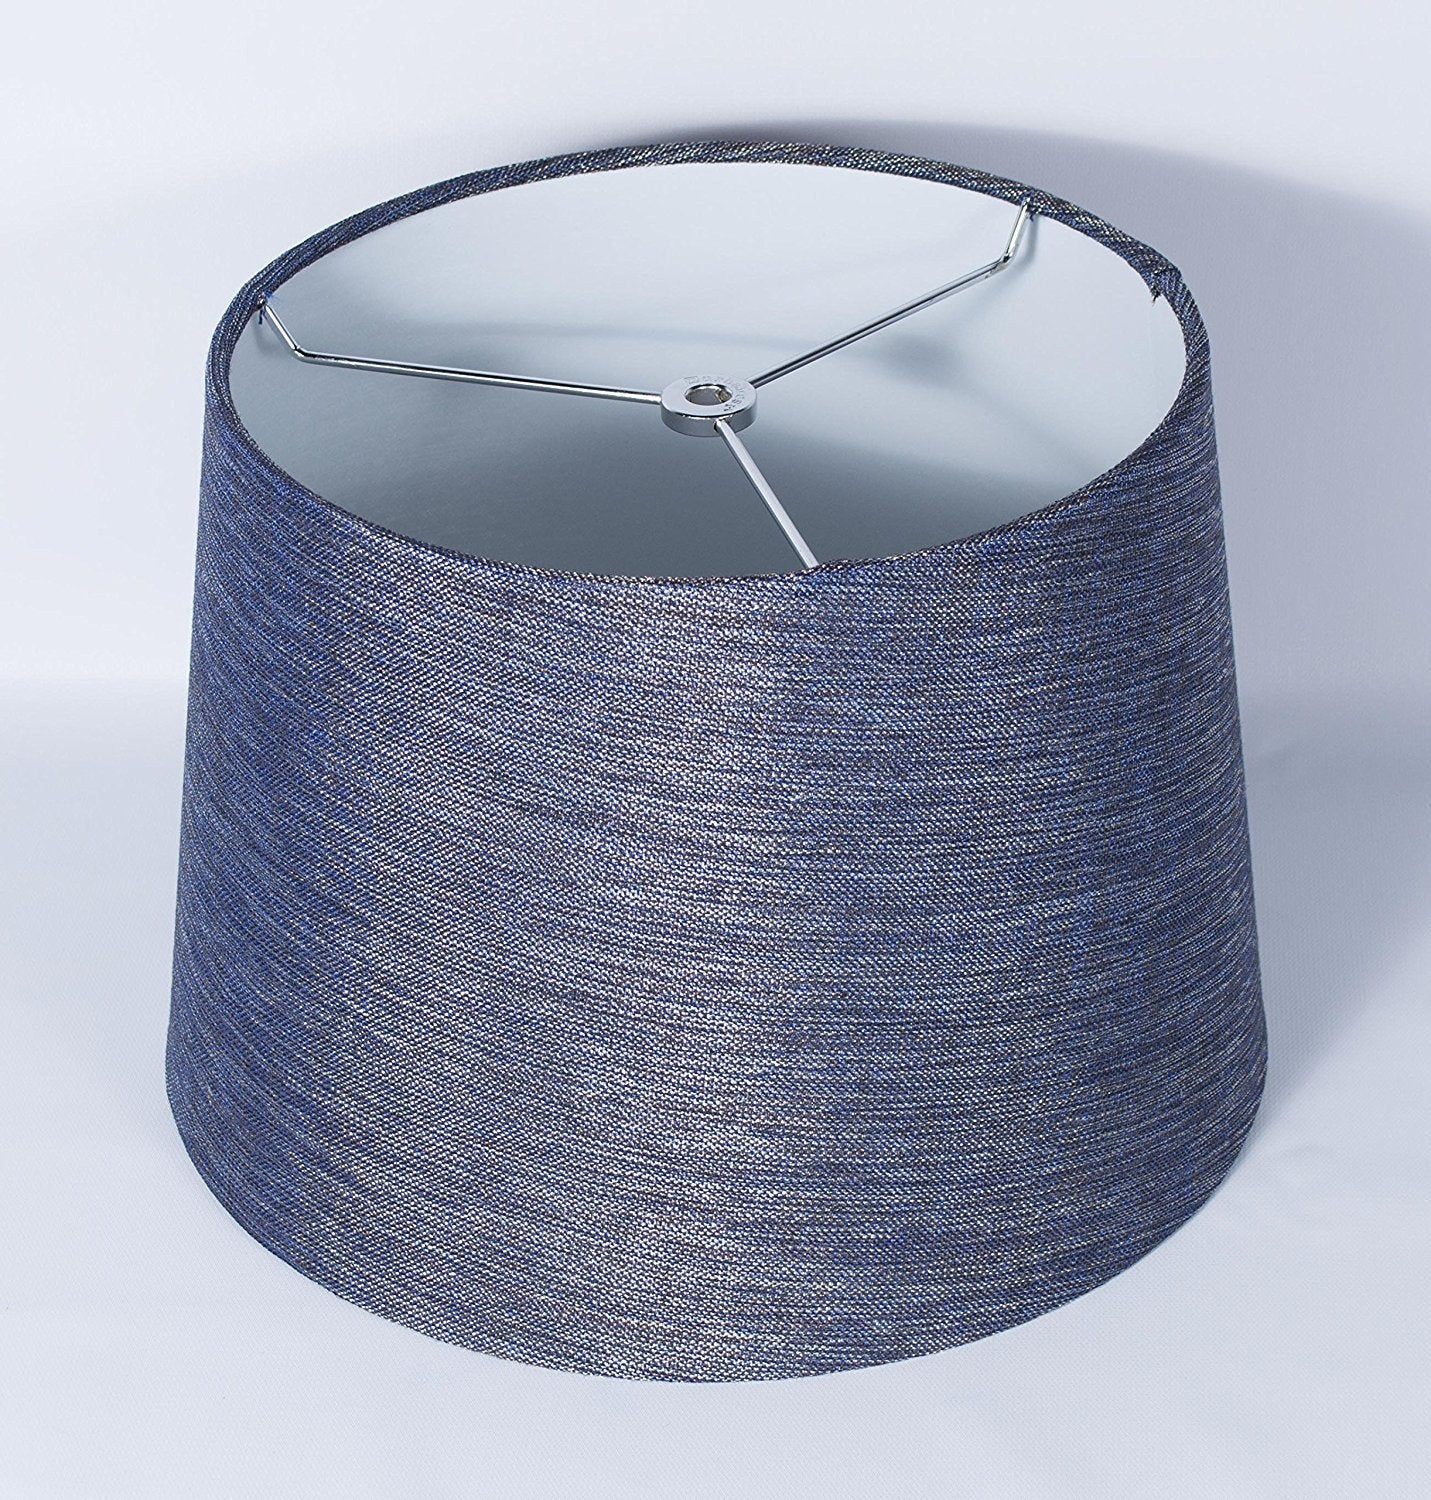 "Galaxy Hardback Drum Lampshade, 12x14x10"", Blue, Spider Fitter"